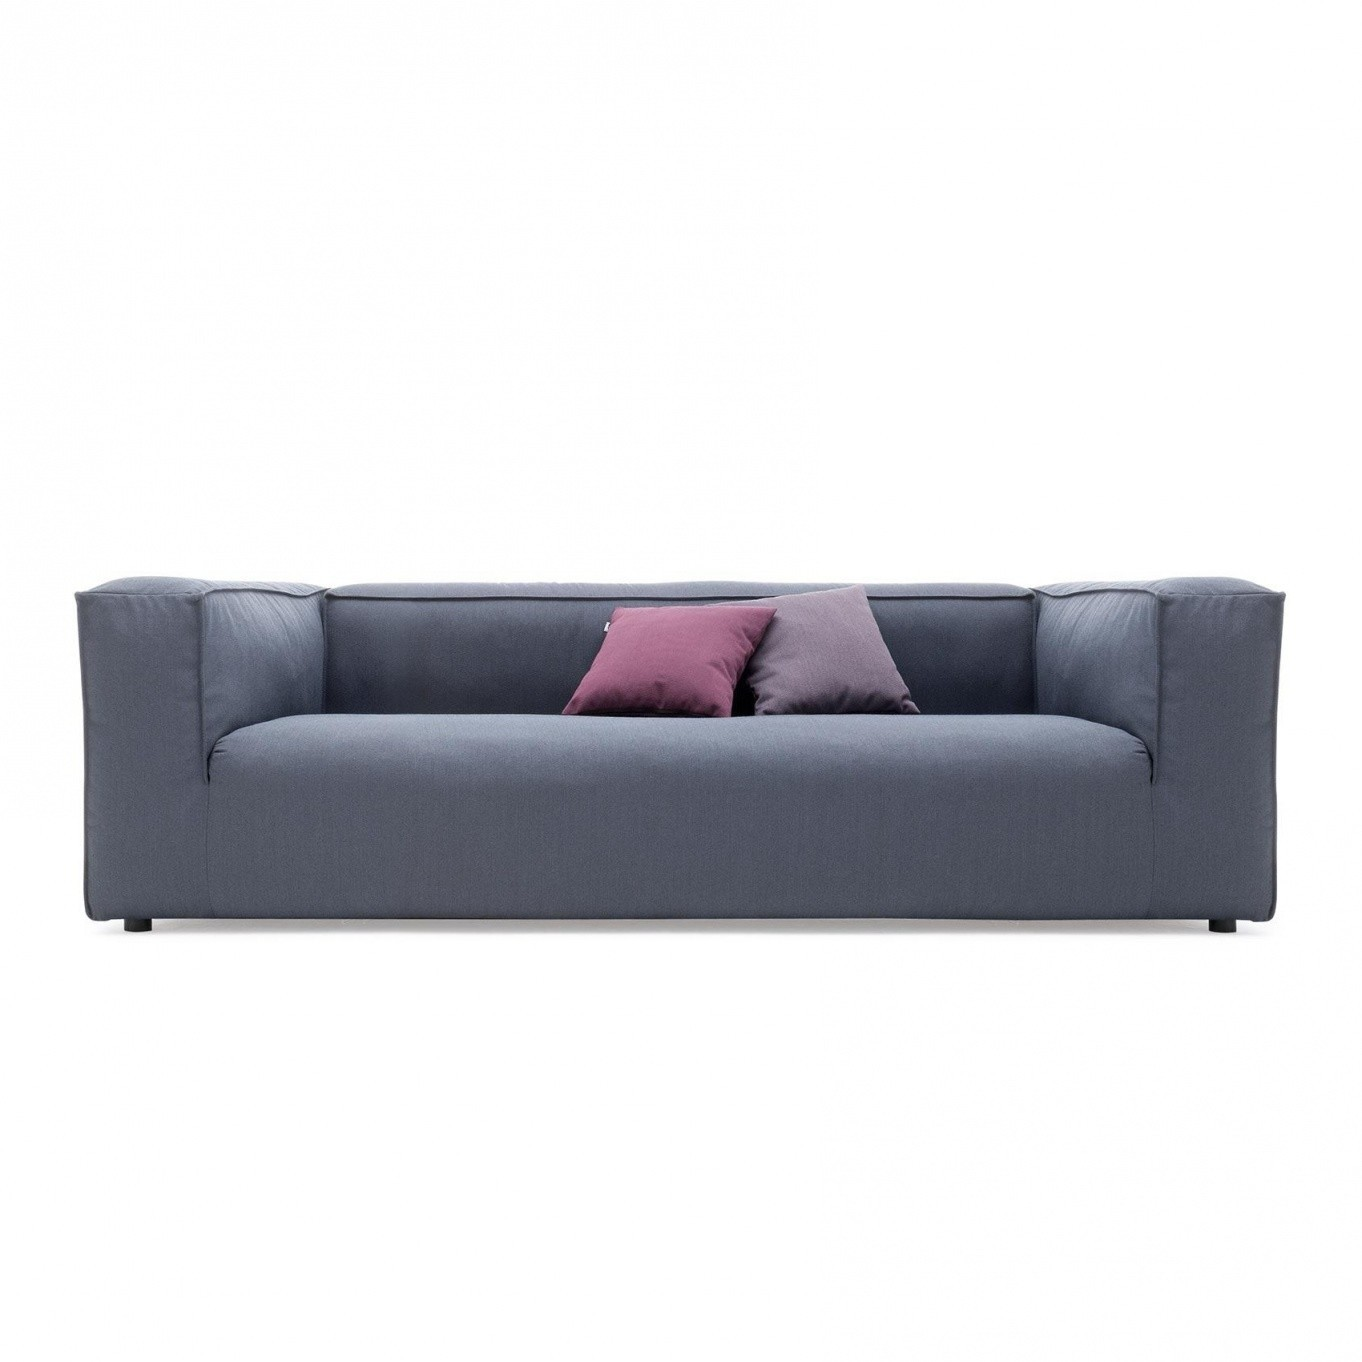 Rolf Benz Couch Freistil 175 3 Seater Sofa